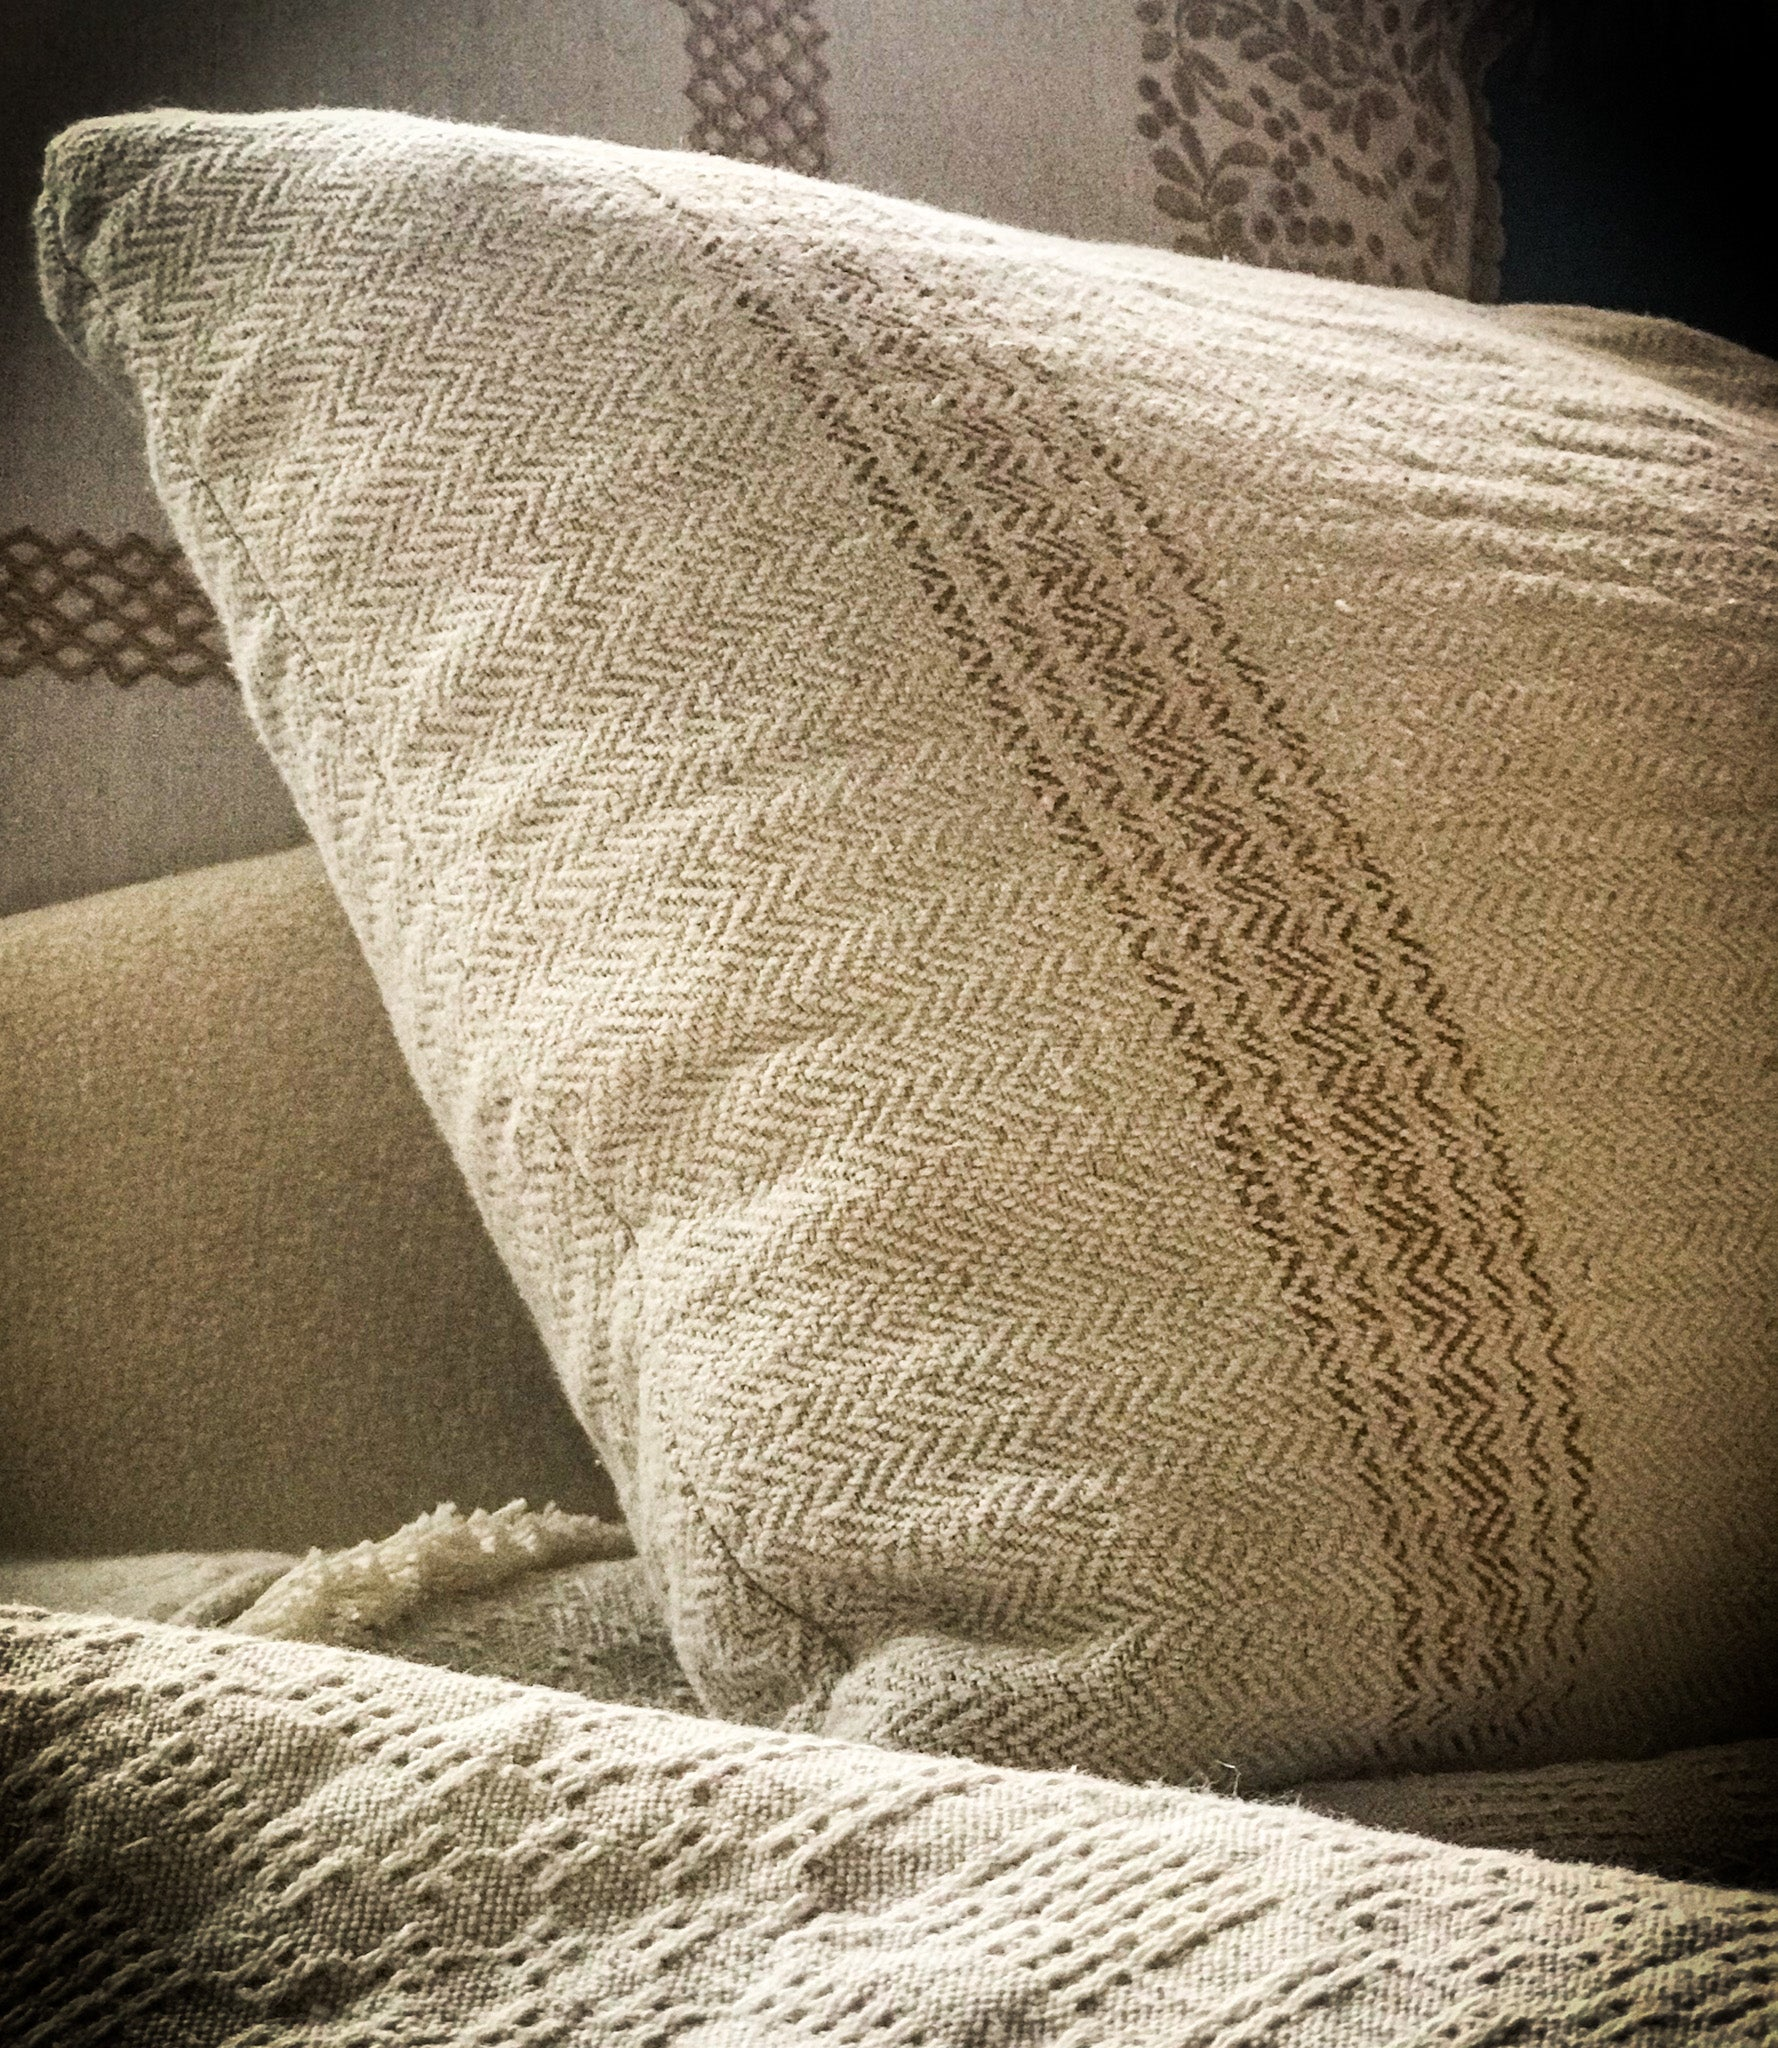 Pillow: Grain sack handwoven Hungarian hemp